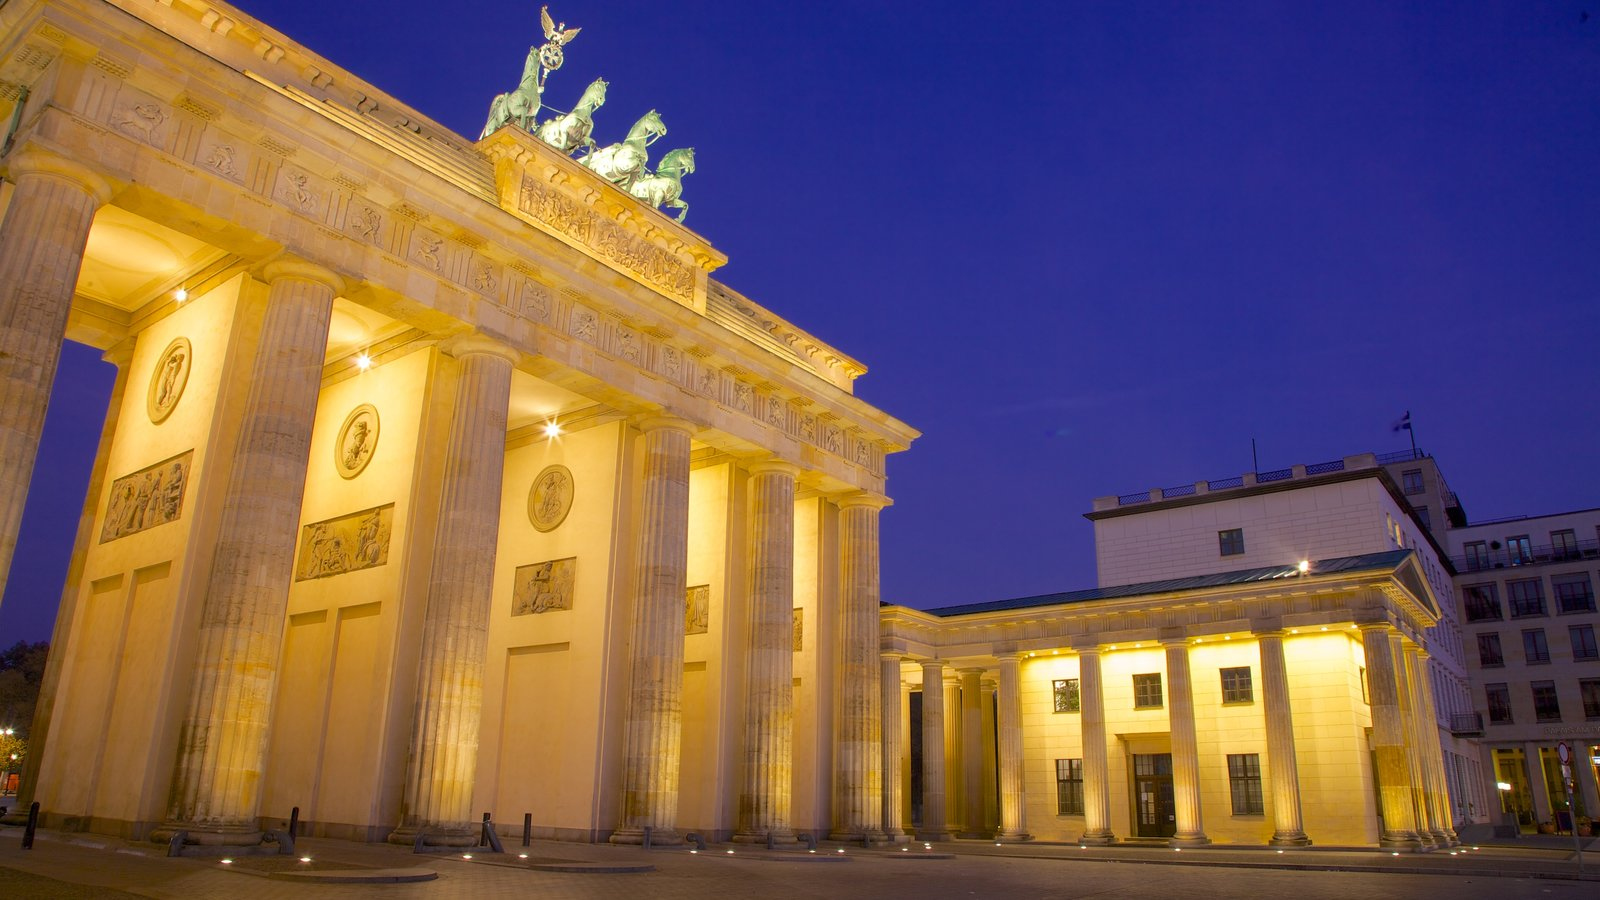 Brandenburg Gate showing night scenes, a city and heritage architecture